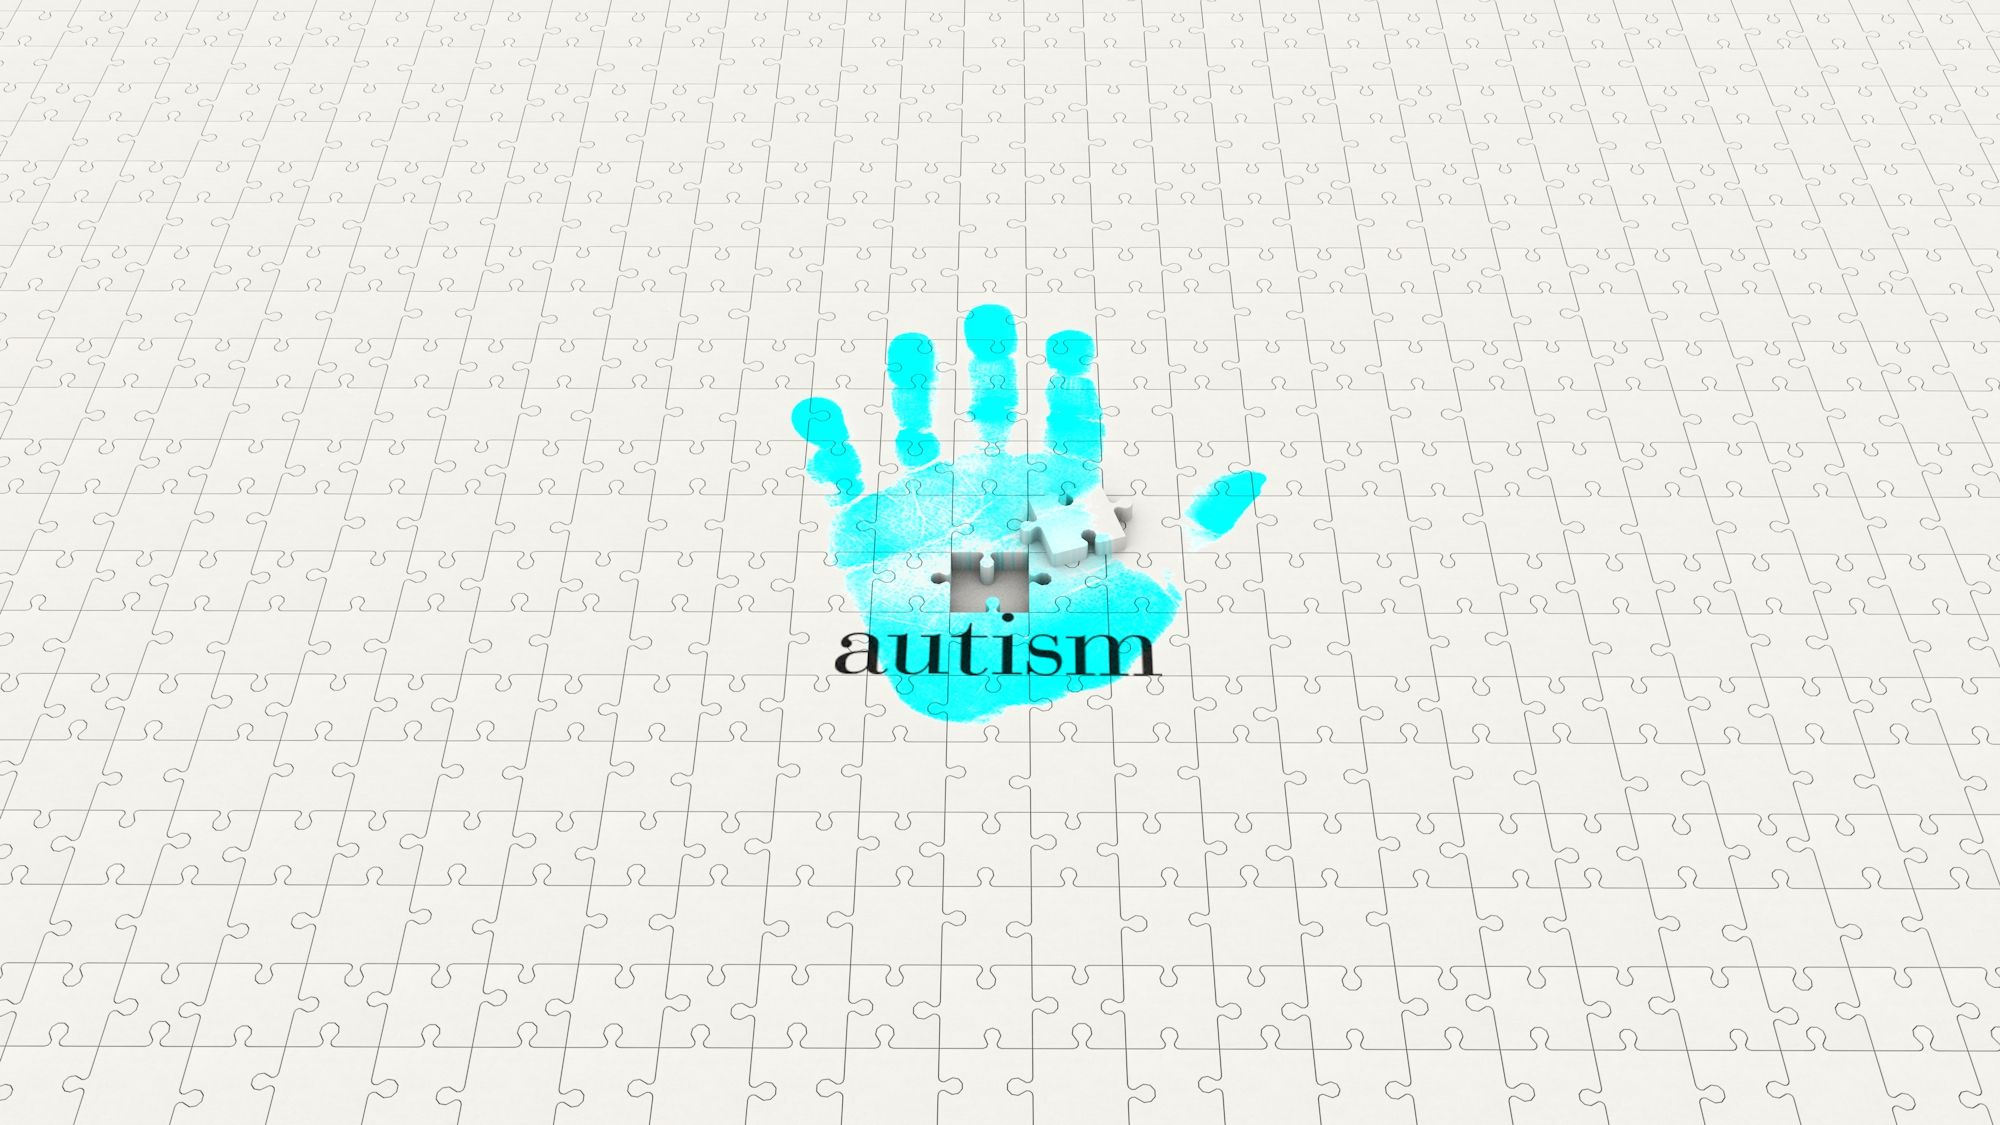 Could Early Intervention Cure Autism For children with Autism